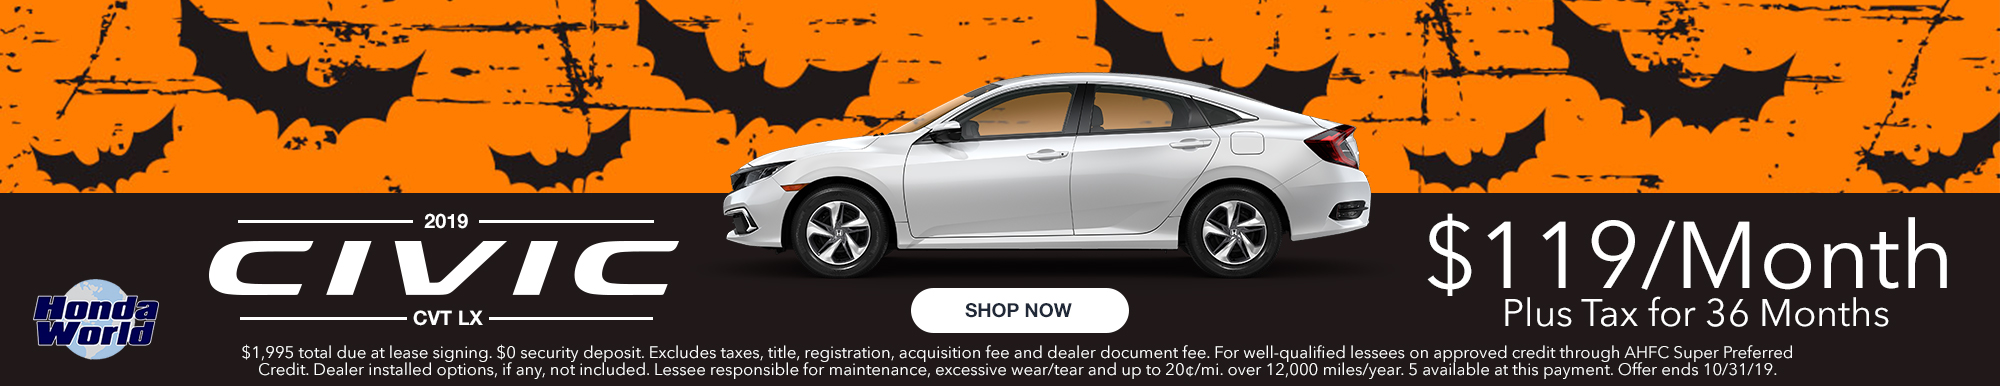 2019 Honda Civic LX Lease Offer $119 a month